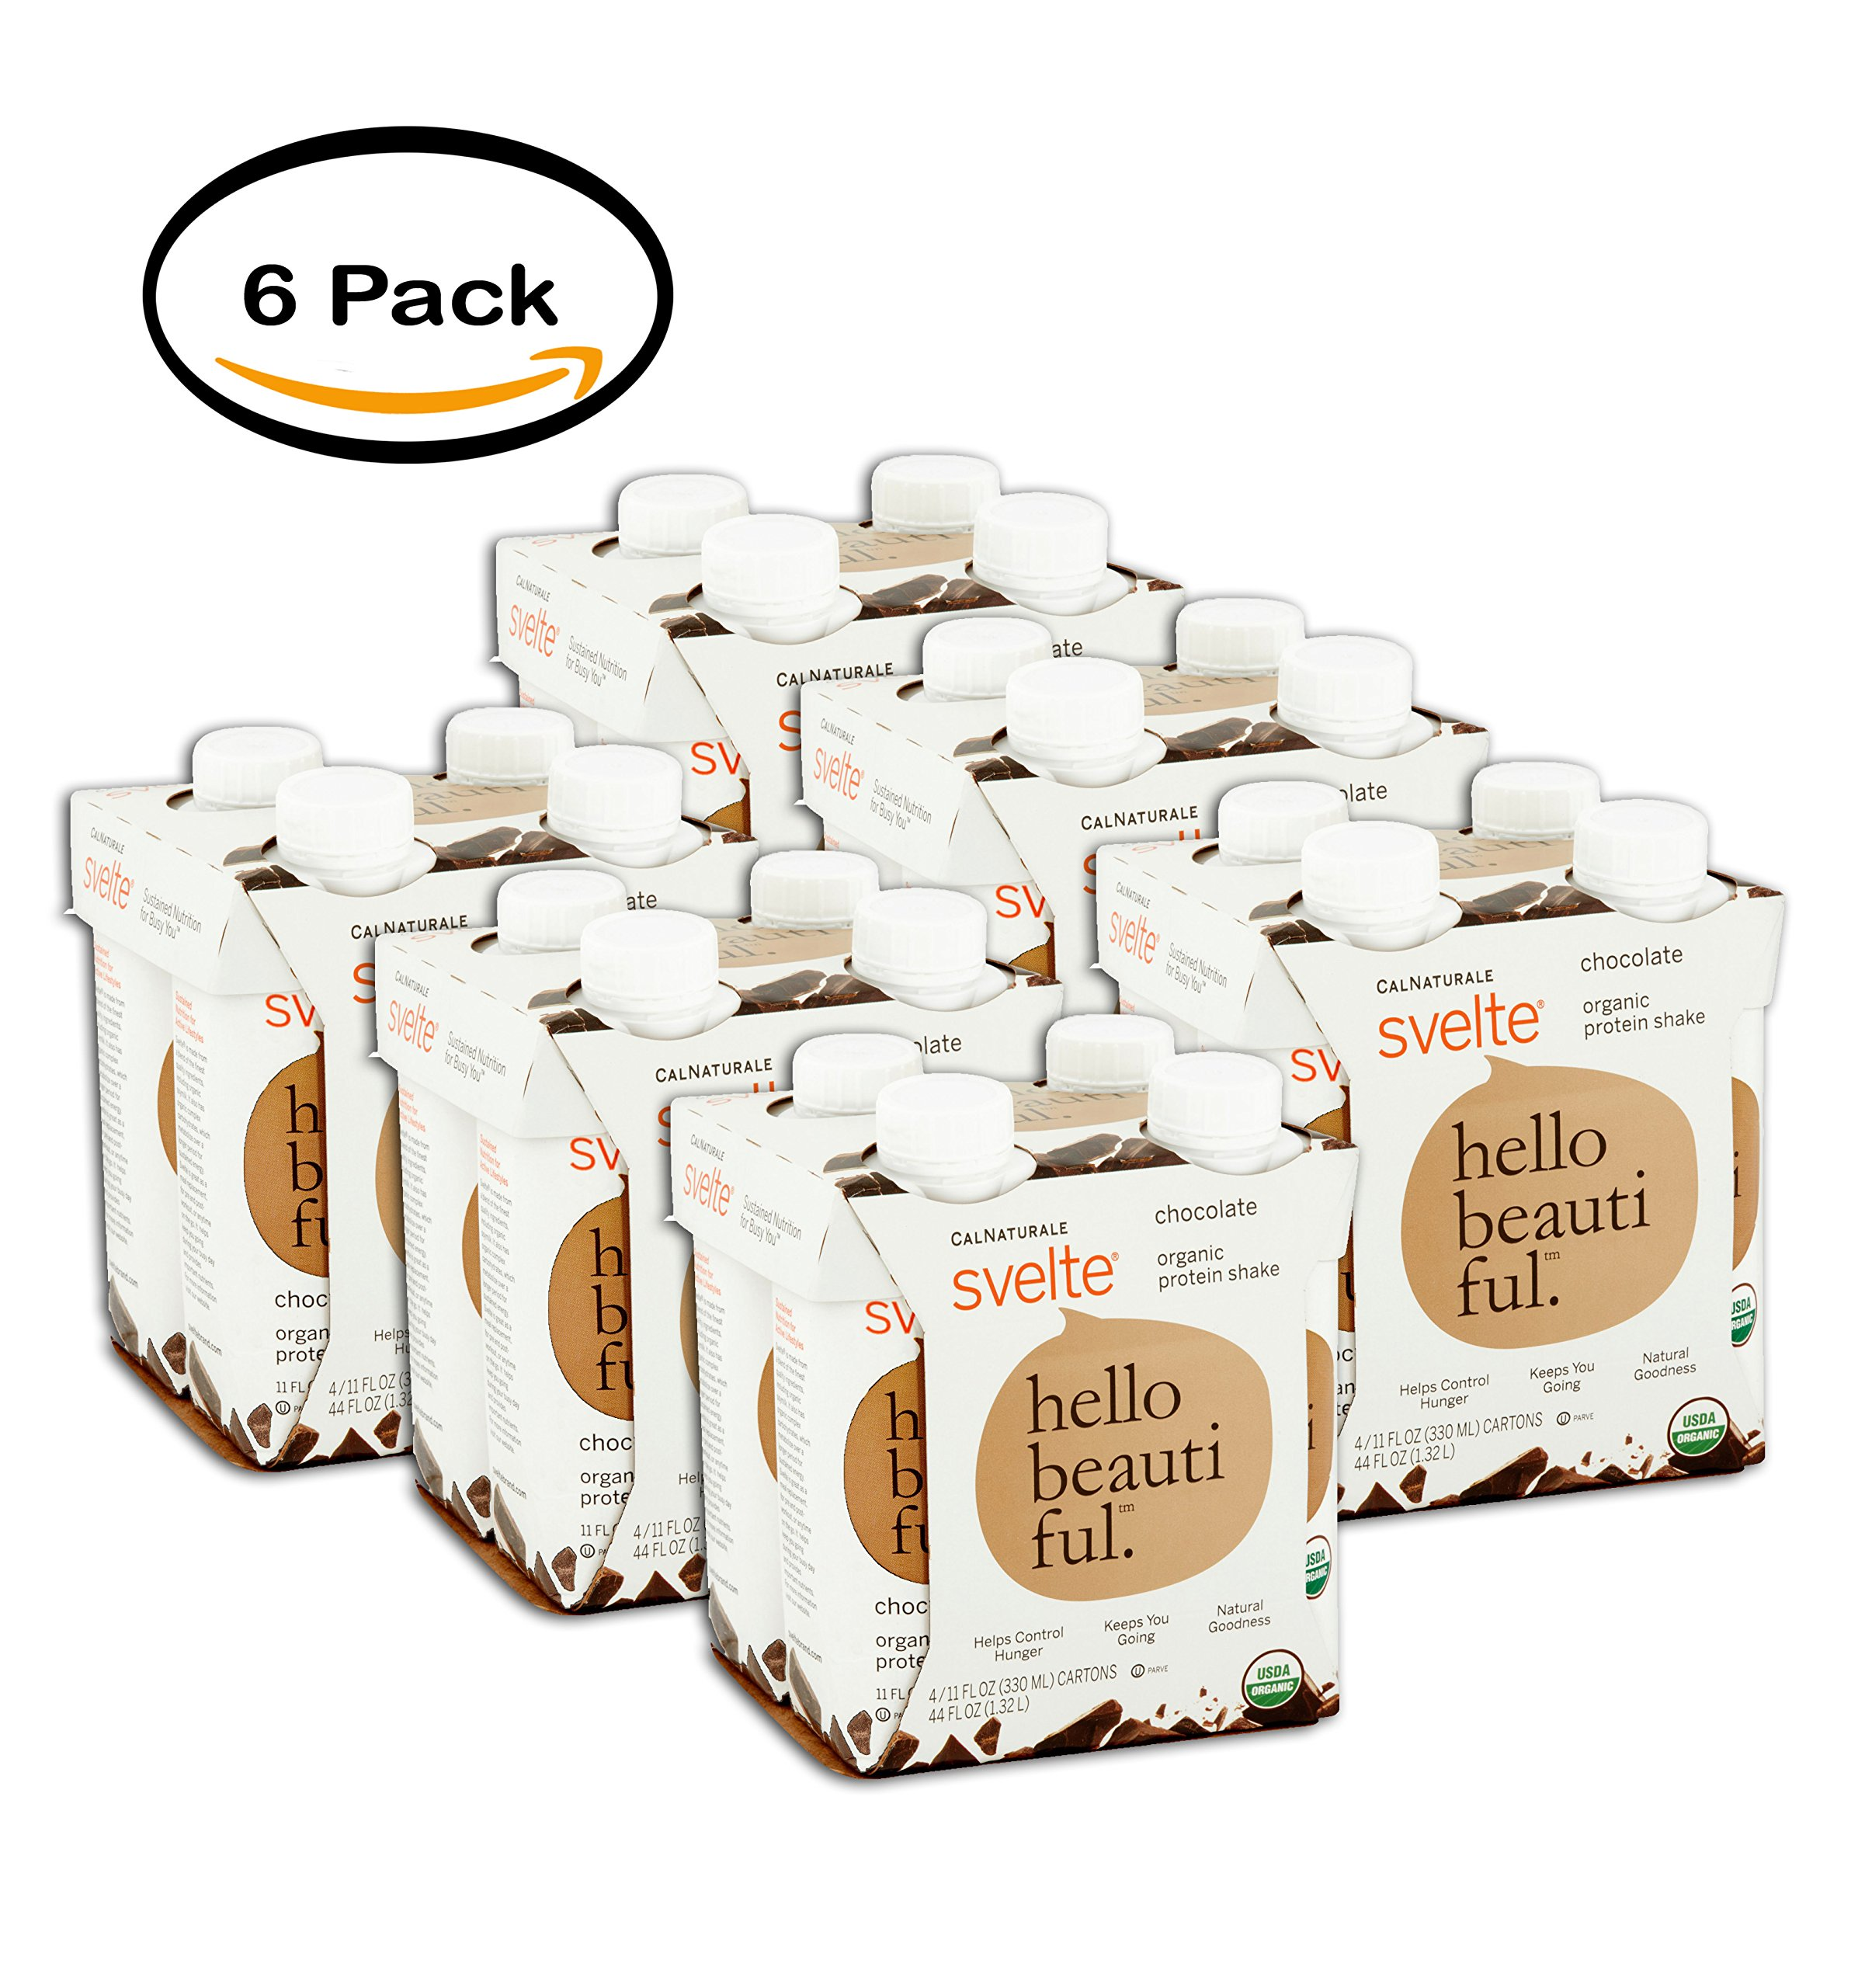 PACK OF 6 - CalNaturale Svelte Chocolate Organic Protein Shakes, 11 fl oz, 4 count